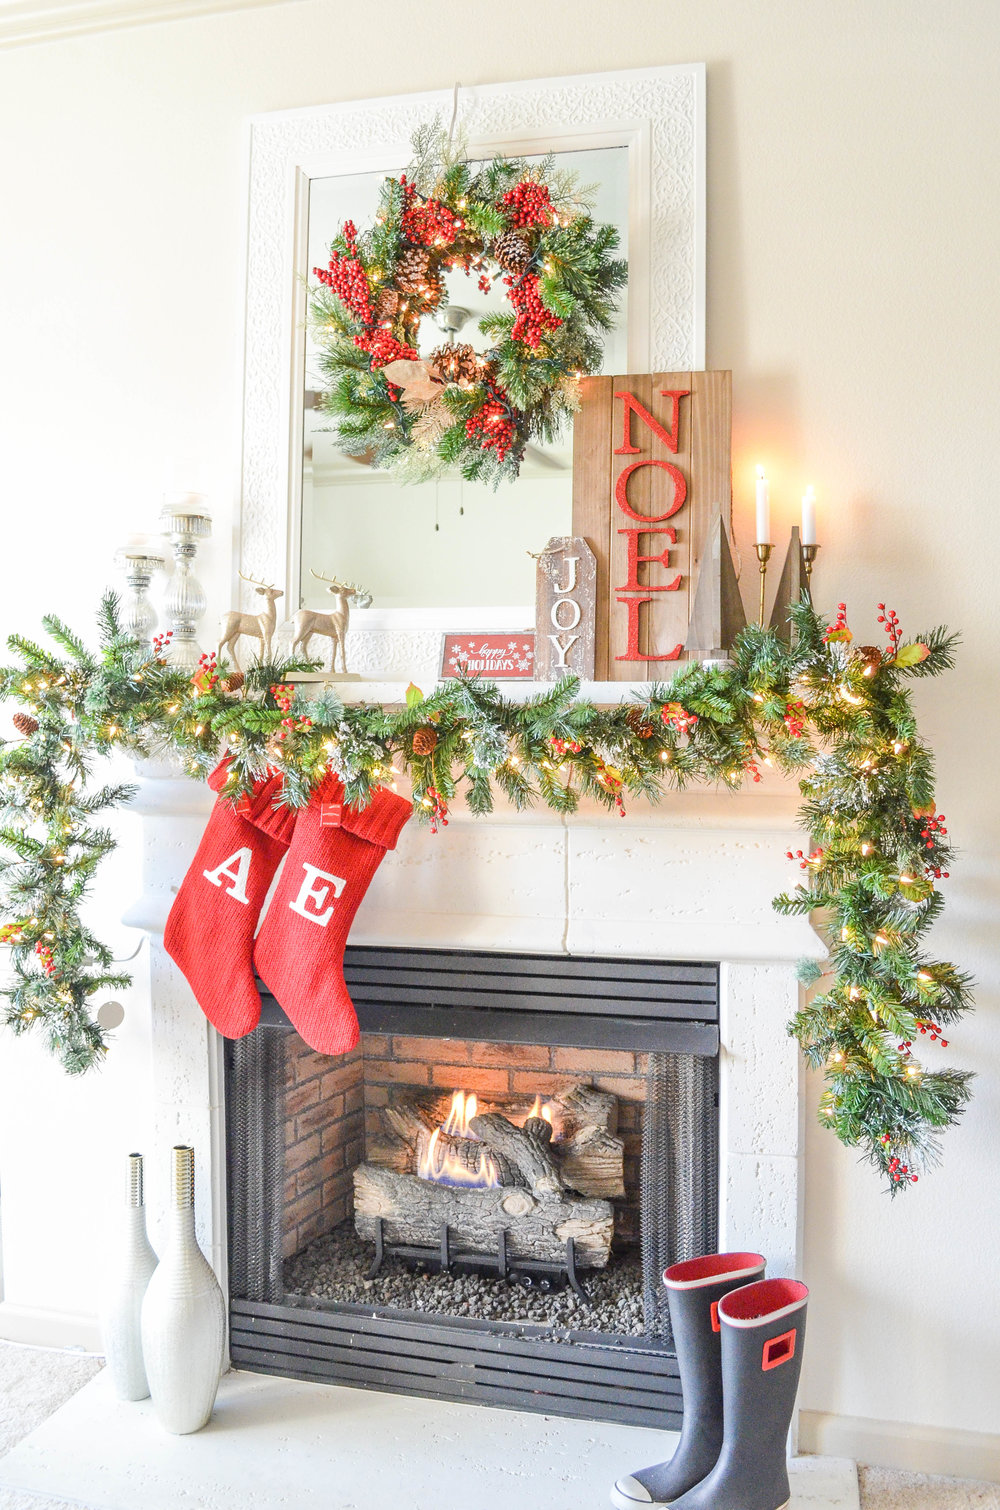 Book Holiday Fireplace Mantel or Bannister Decorating - Asha-Maia Design | Interiors + Events, Interior Design, Interior Designer, Interior Decorator, Christmas Decorator, Christmas Decoration, Christmas Tree Decorating, Holiday Decorator, Alexandria, VA 22302, Serving Alexandria, VA, Arlington, VA, Washington, DC and surrounding areas.